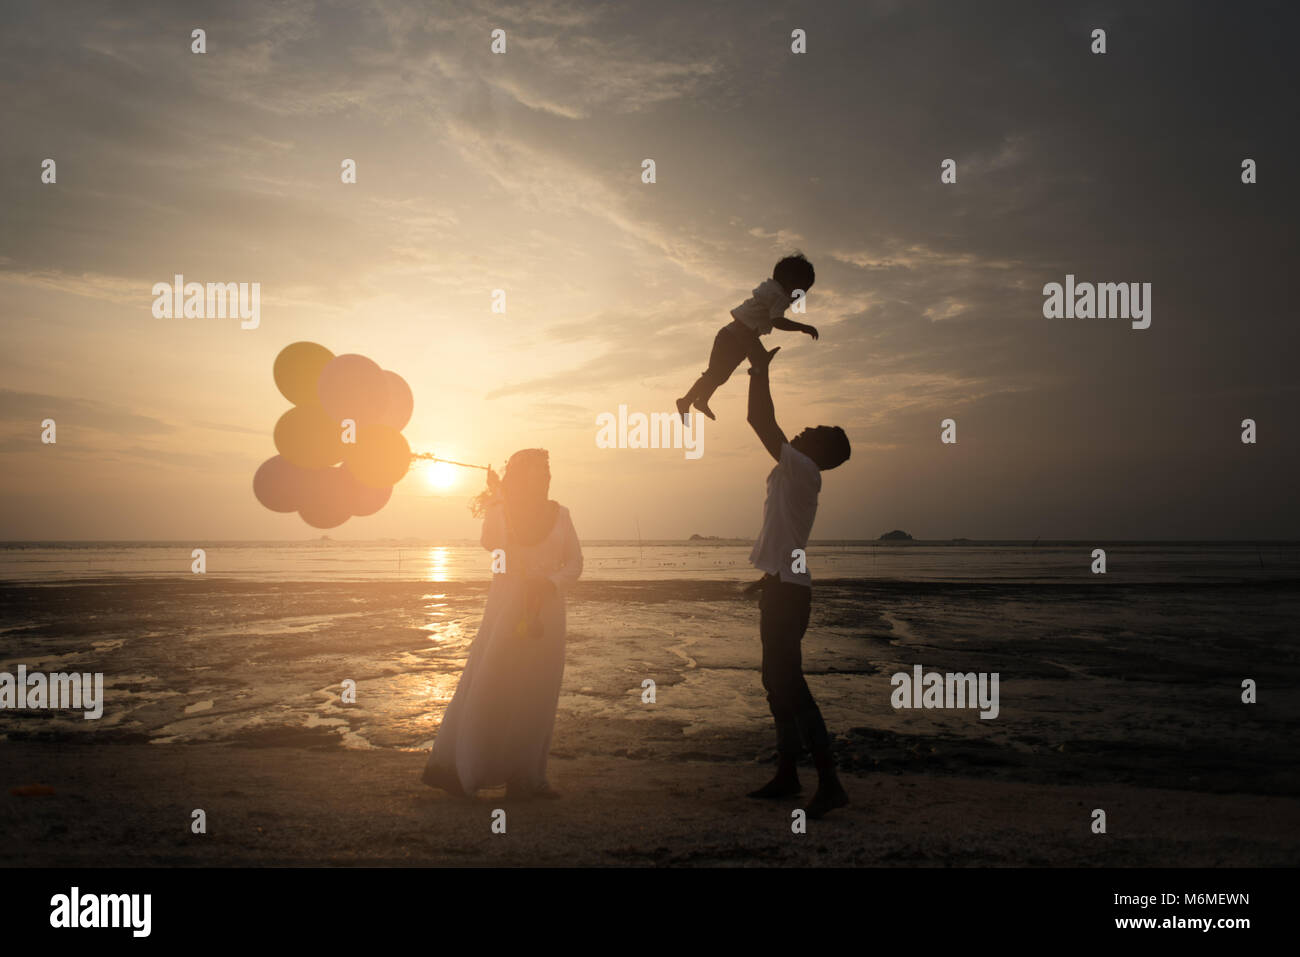 sillhouette of happy asian family having fun time at the beach with sunset view as background. family concept - Stock Image